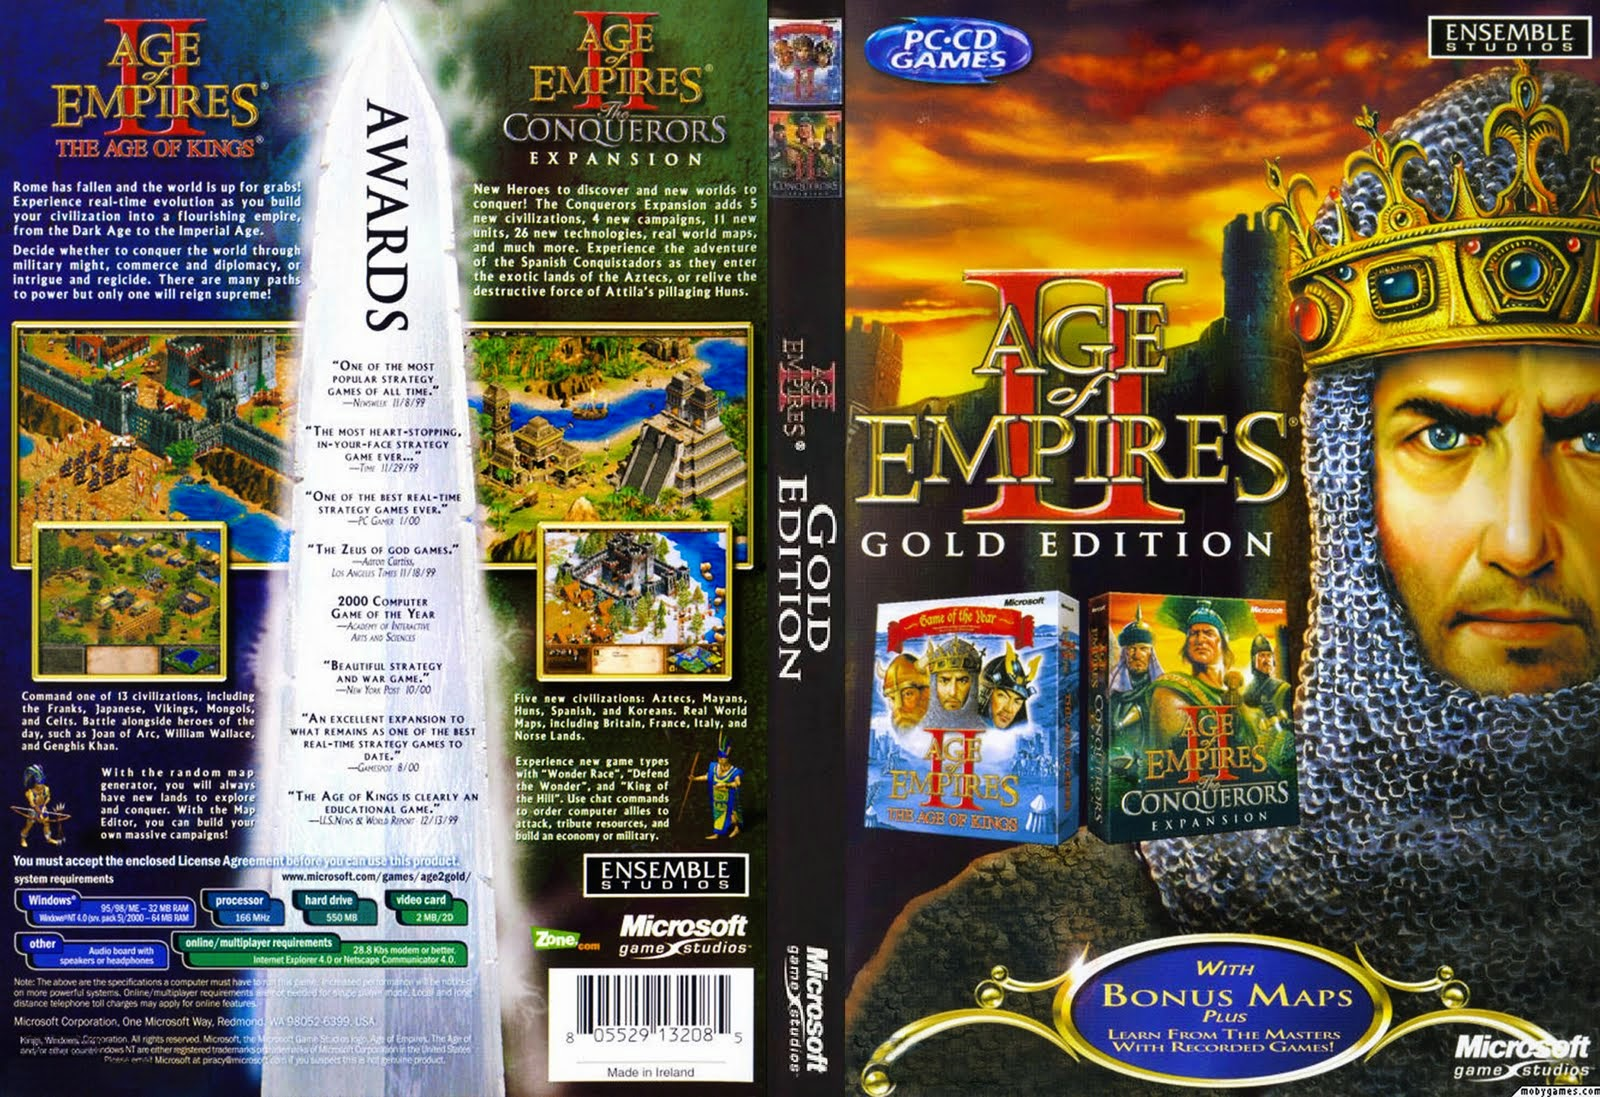 age of empires 2 for windows 7 64 bit free download